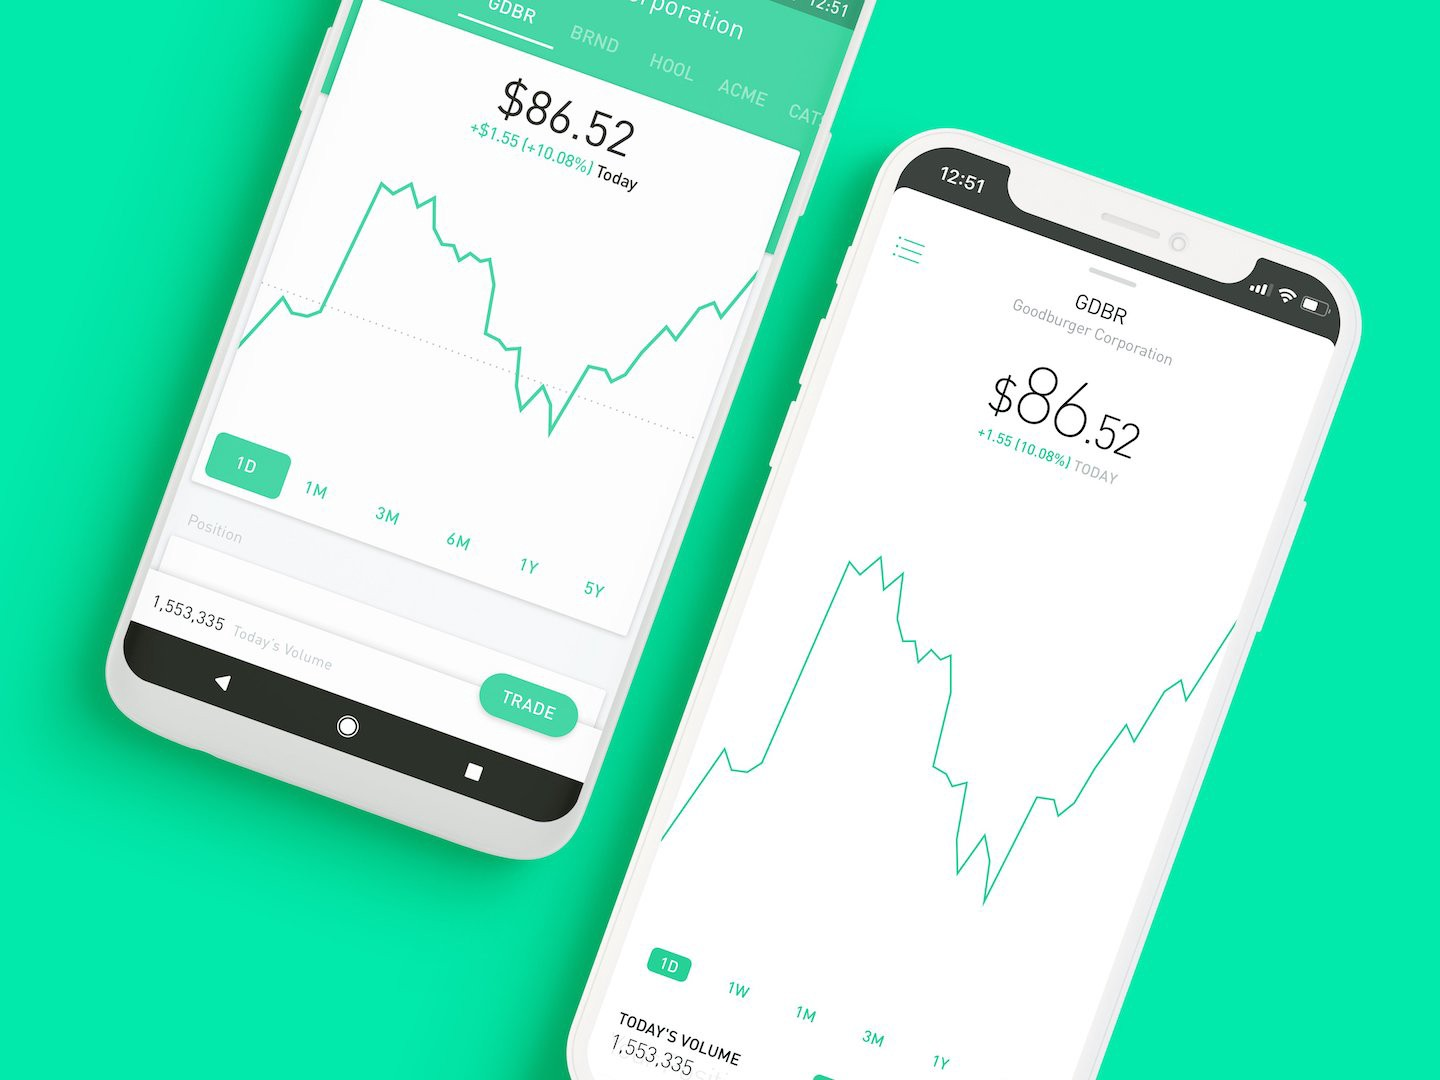 Open Custodial Account Robinhood